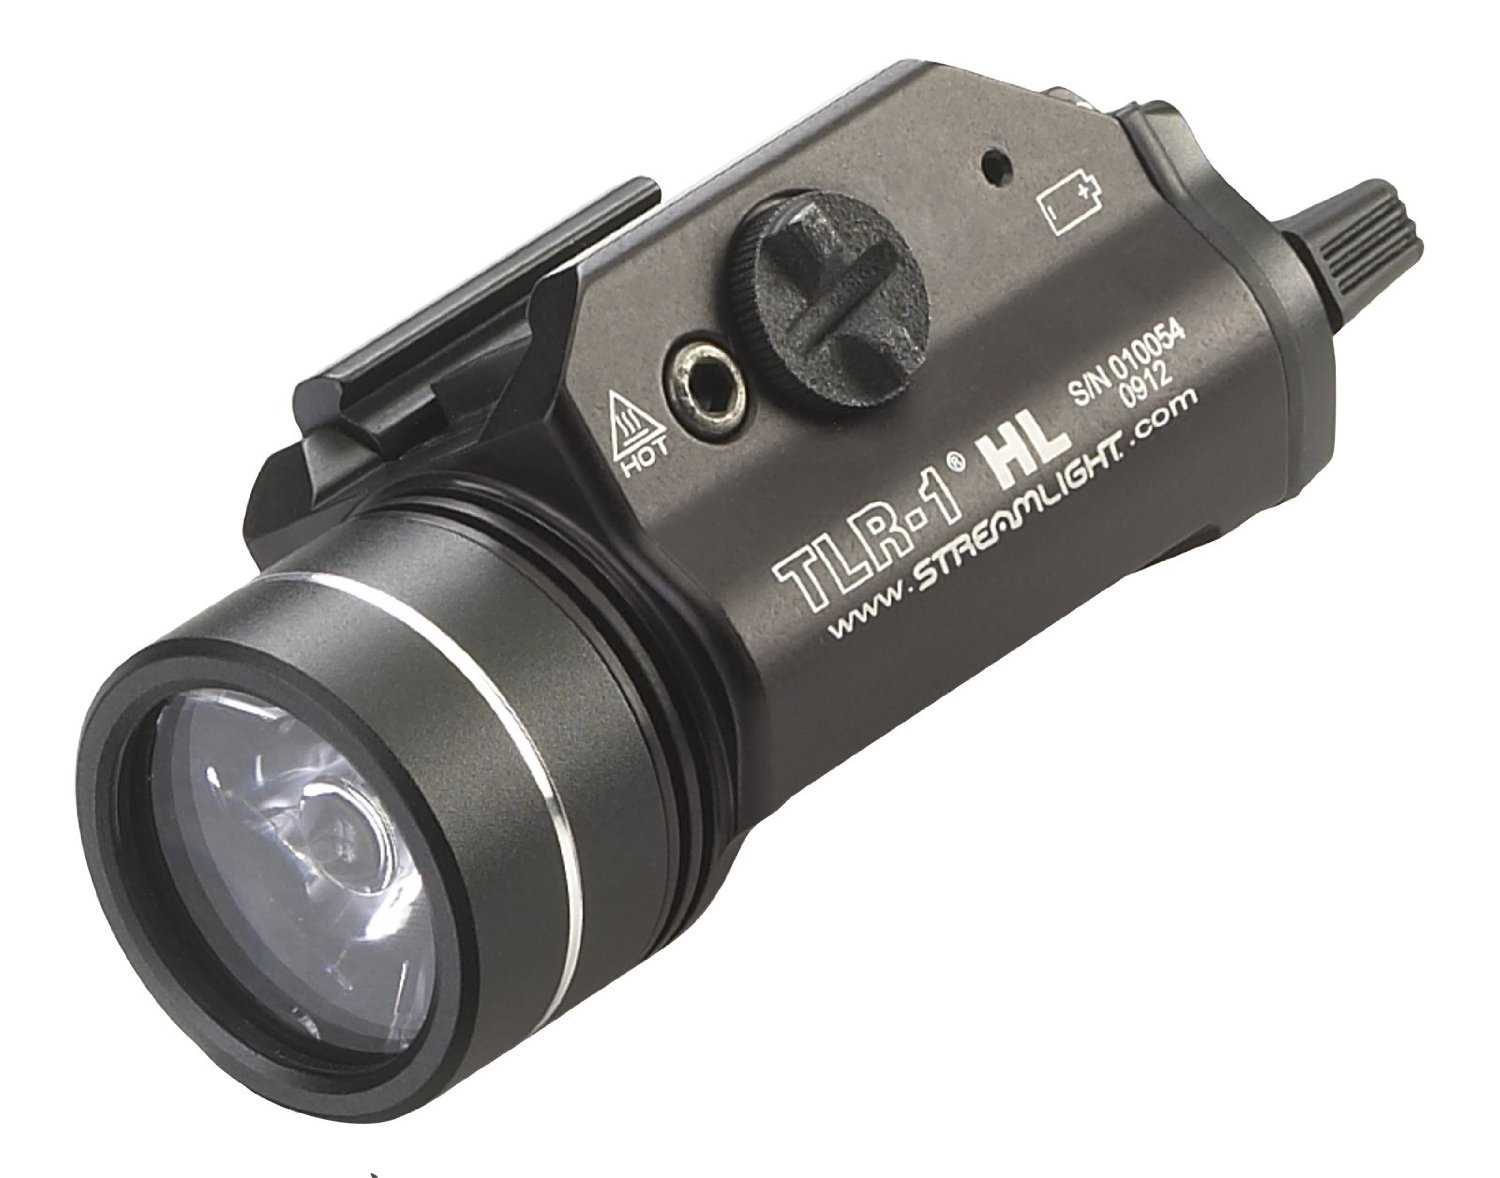 Streamlight 69260 TLR-1 HL High Lumen Rail-Mounted Tactical Light